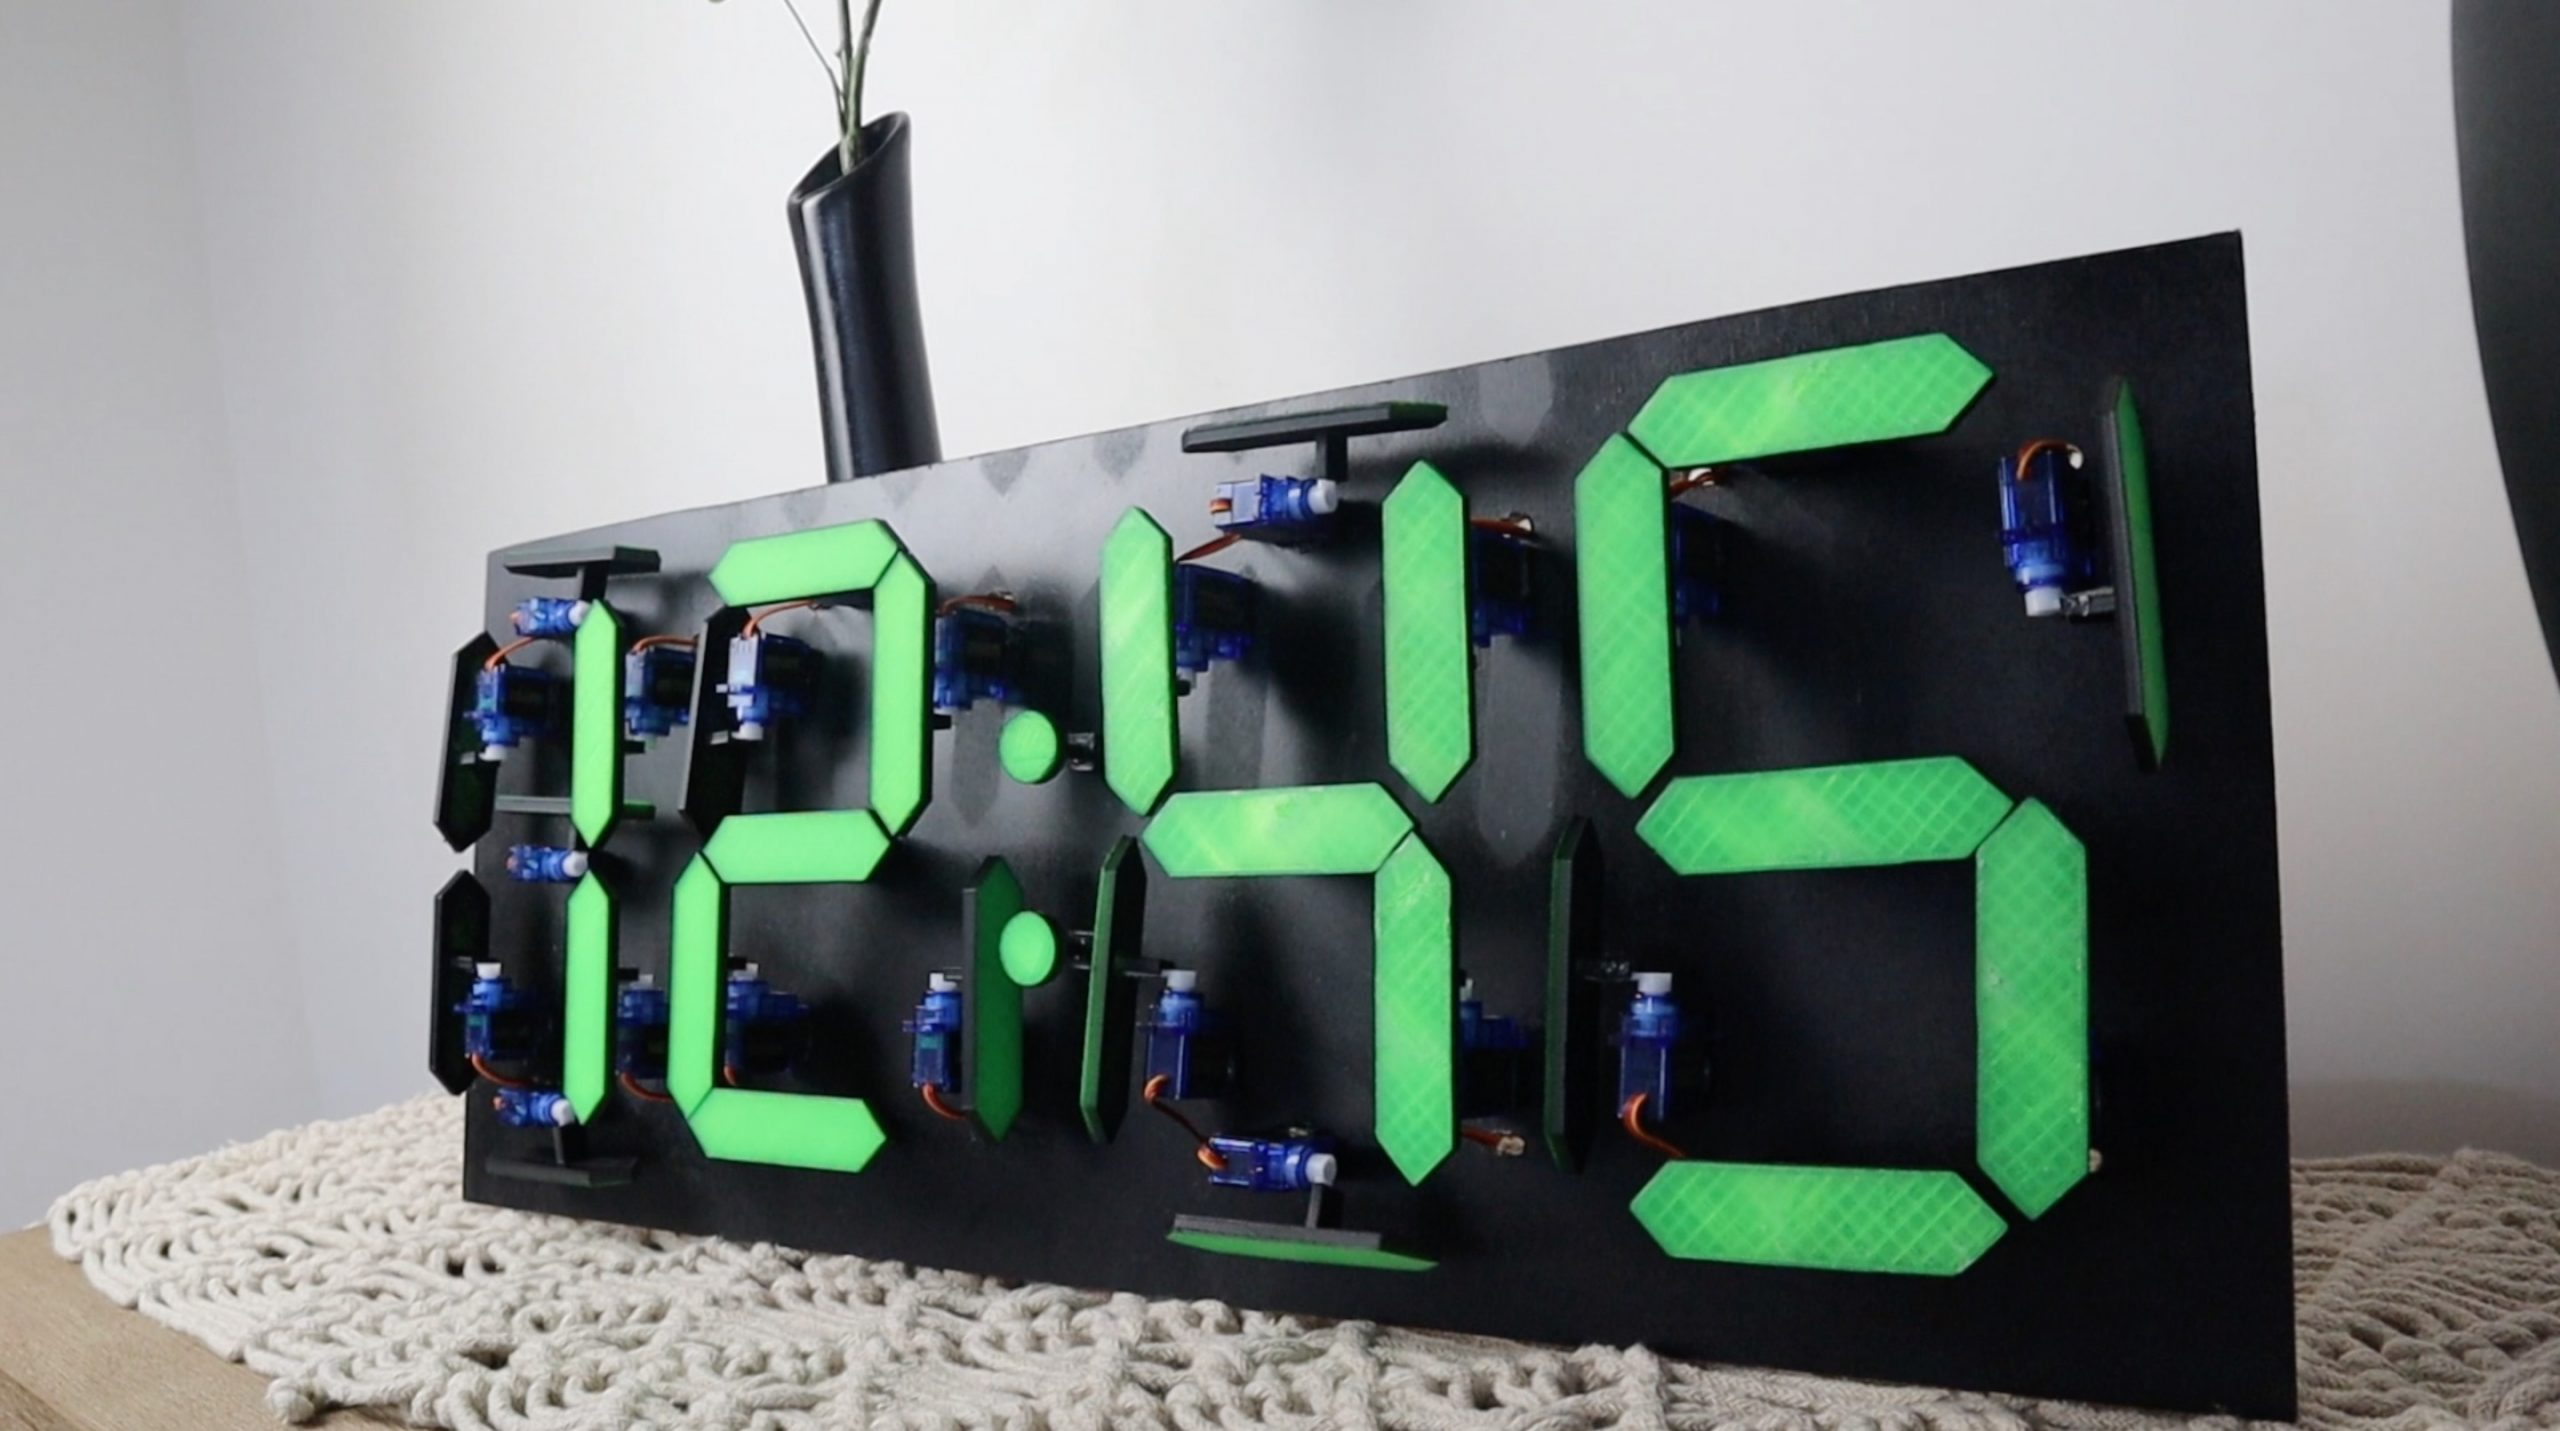 Mechanical 7 Segment Display Using Servos